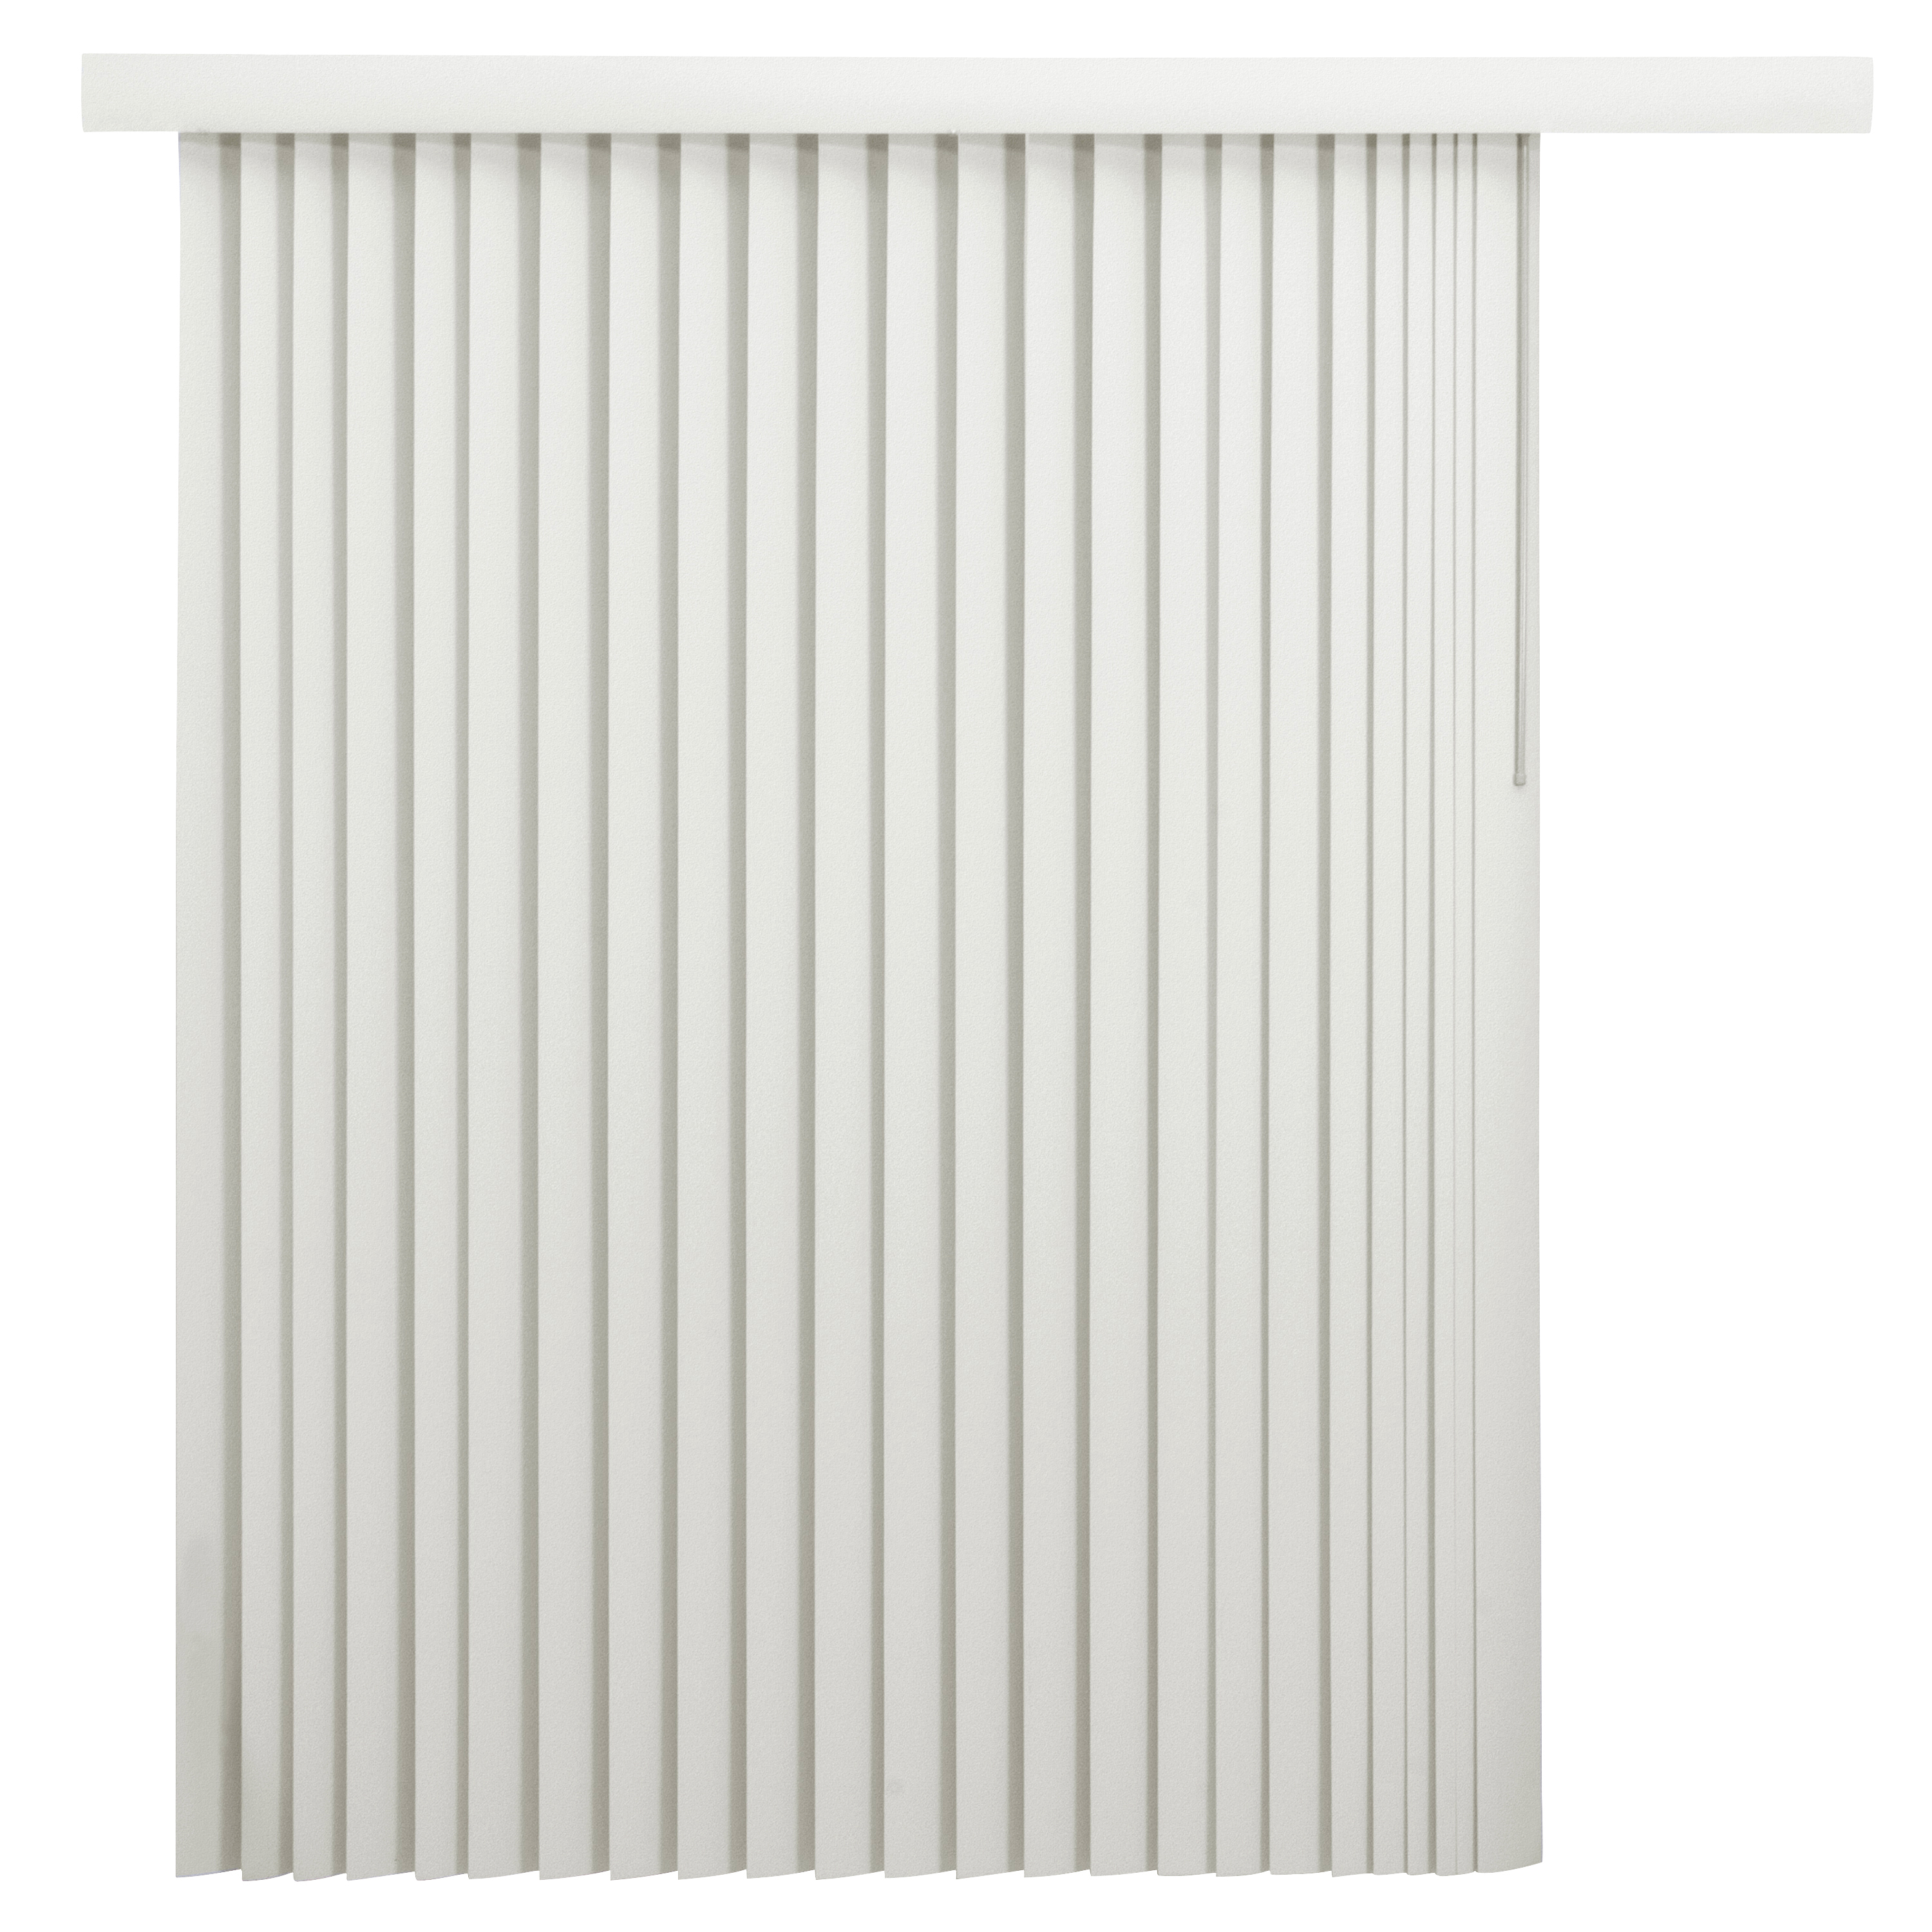 Mainstays Room Darkening Vertical Blinds With Embossed Leaf Pattern, Oyster